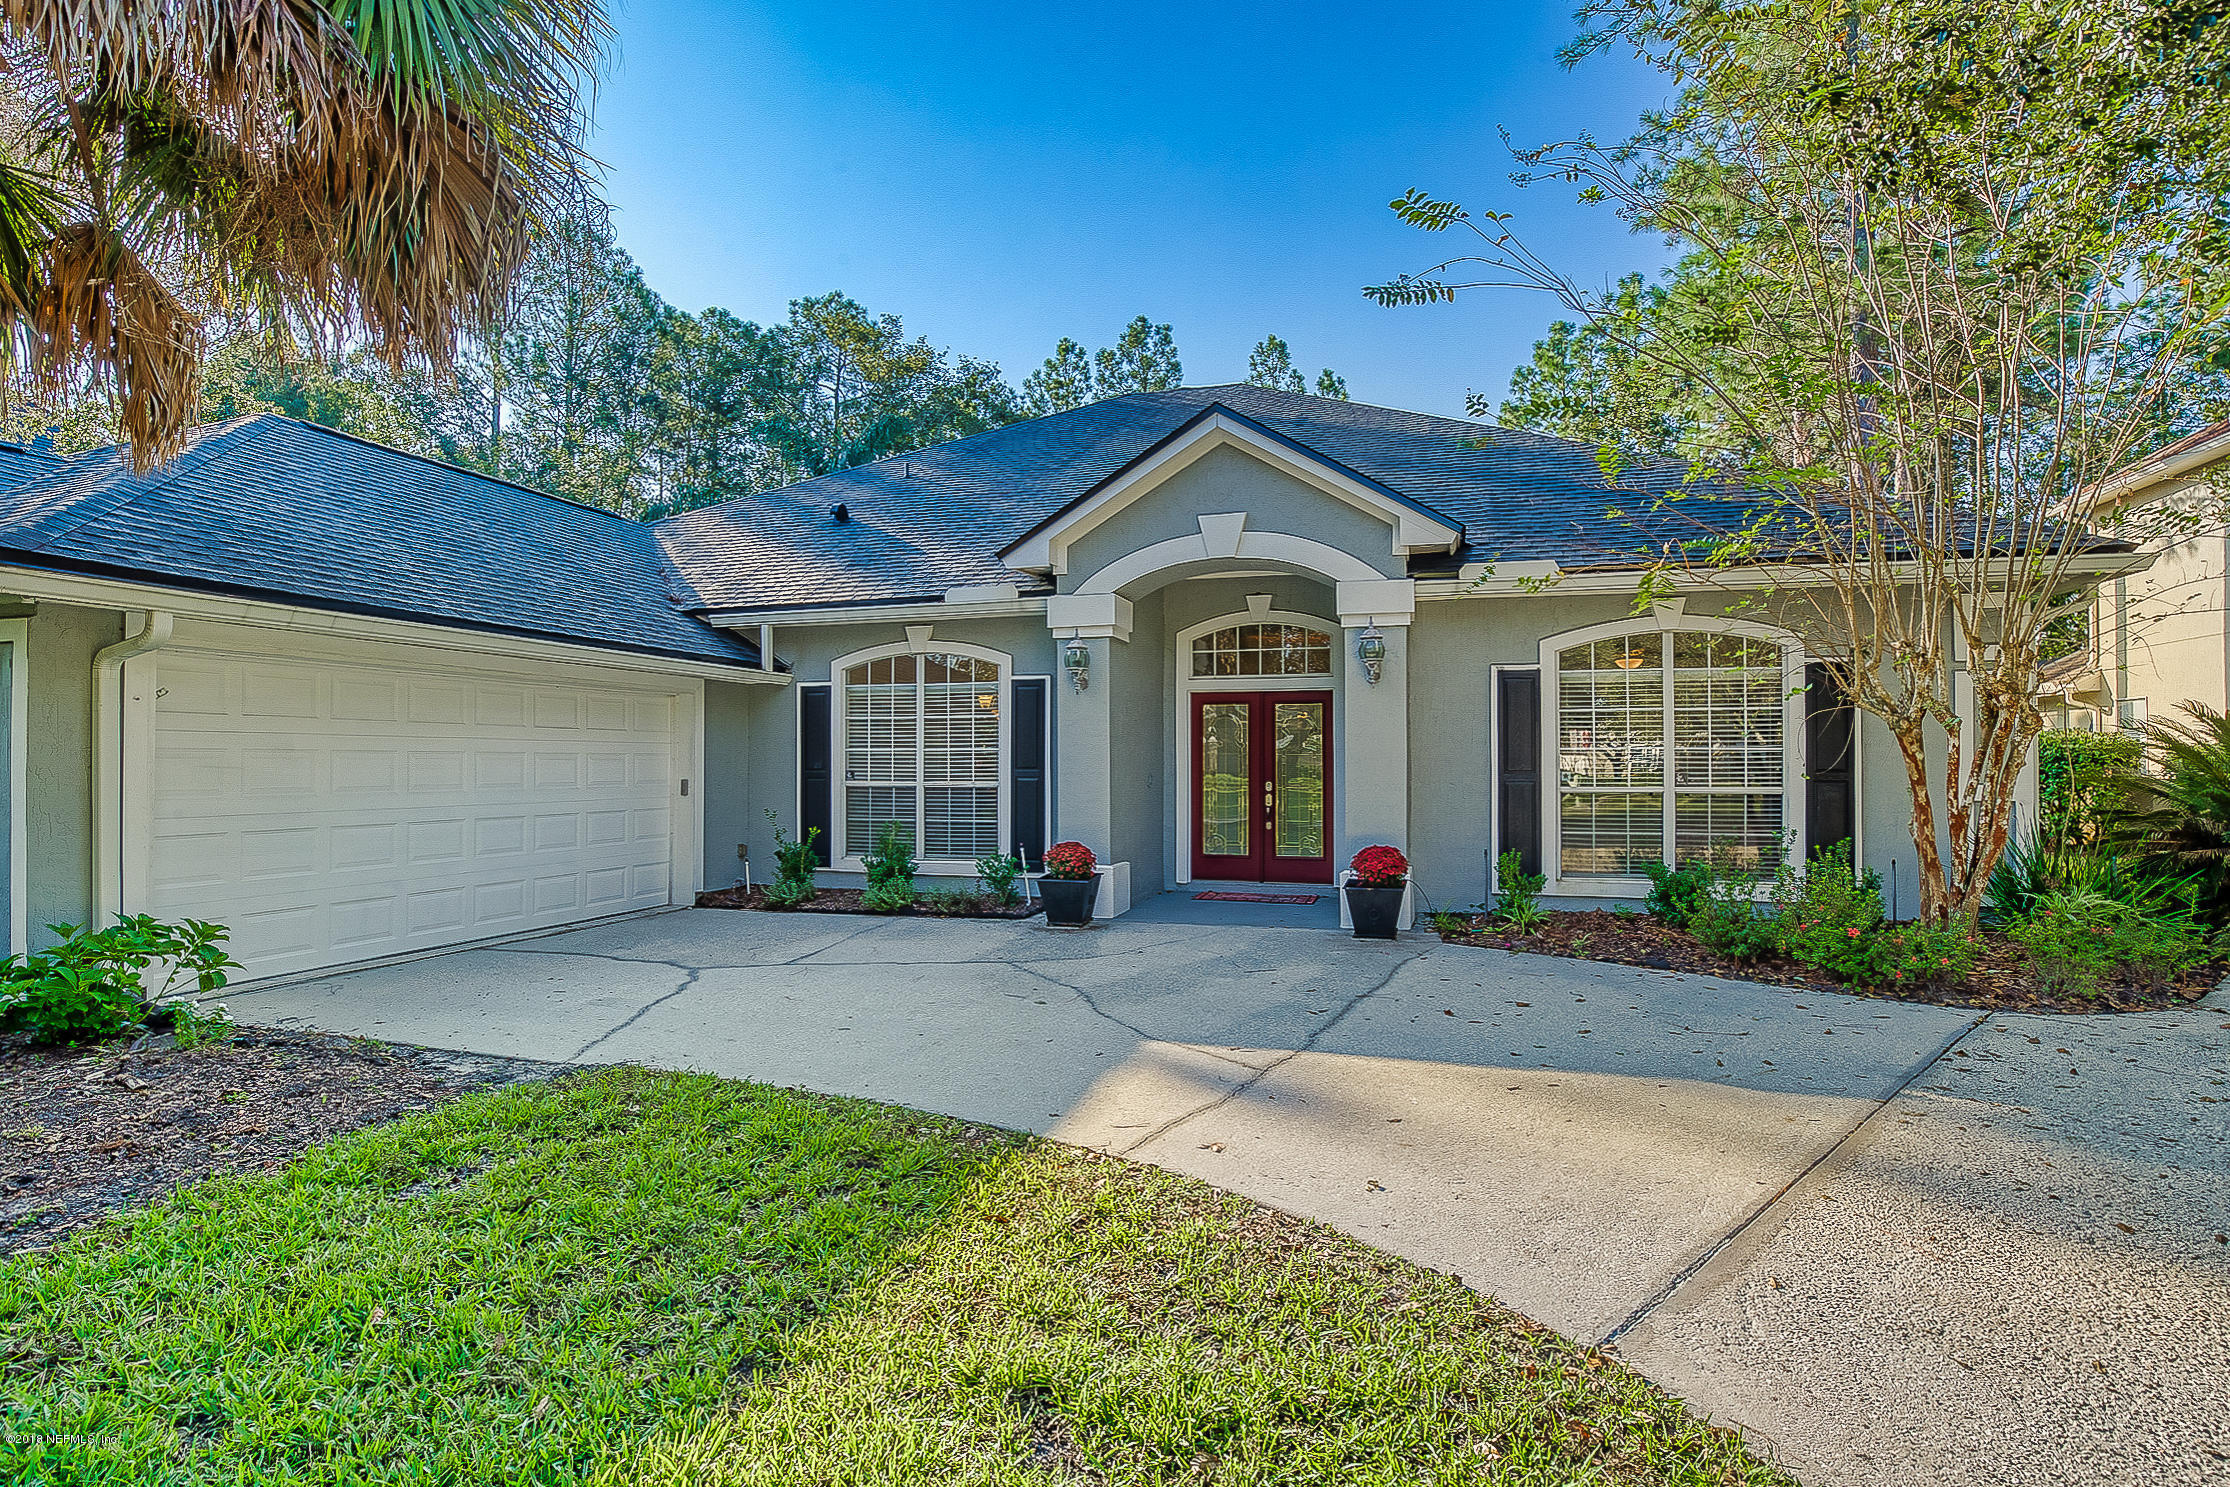 228 TWINNING, JACKSONVILLE, FLORIDA 32259, 5 Bedrooms Bedrooms, ,4 BathroomsBathrooms,Residential - single family,For sale,TWINNING,965335